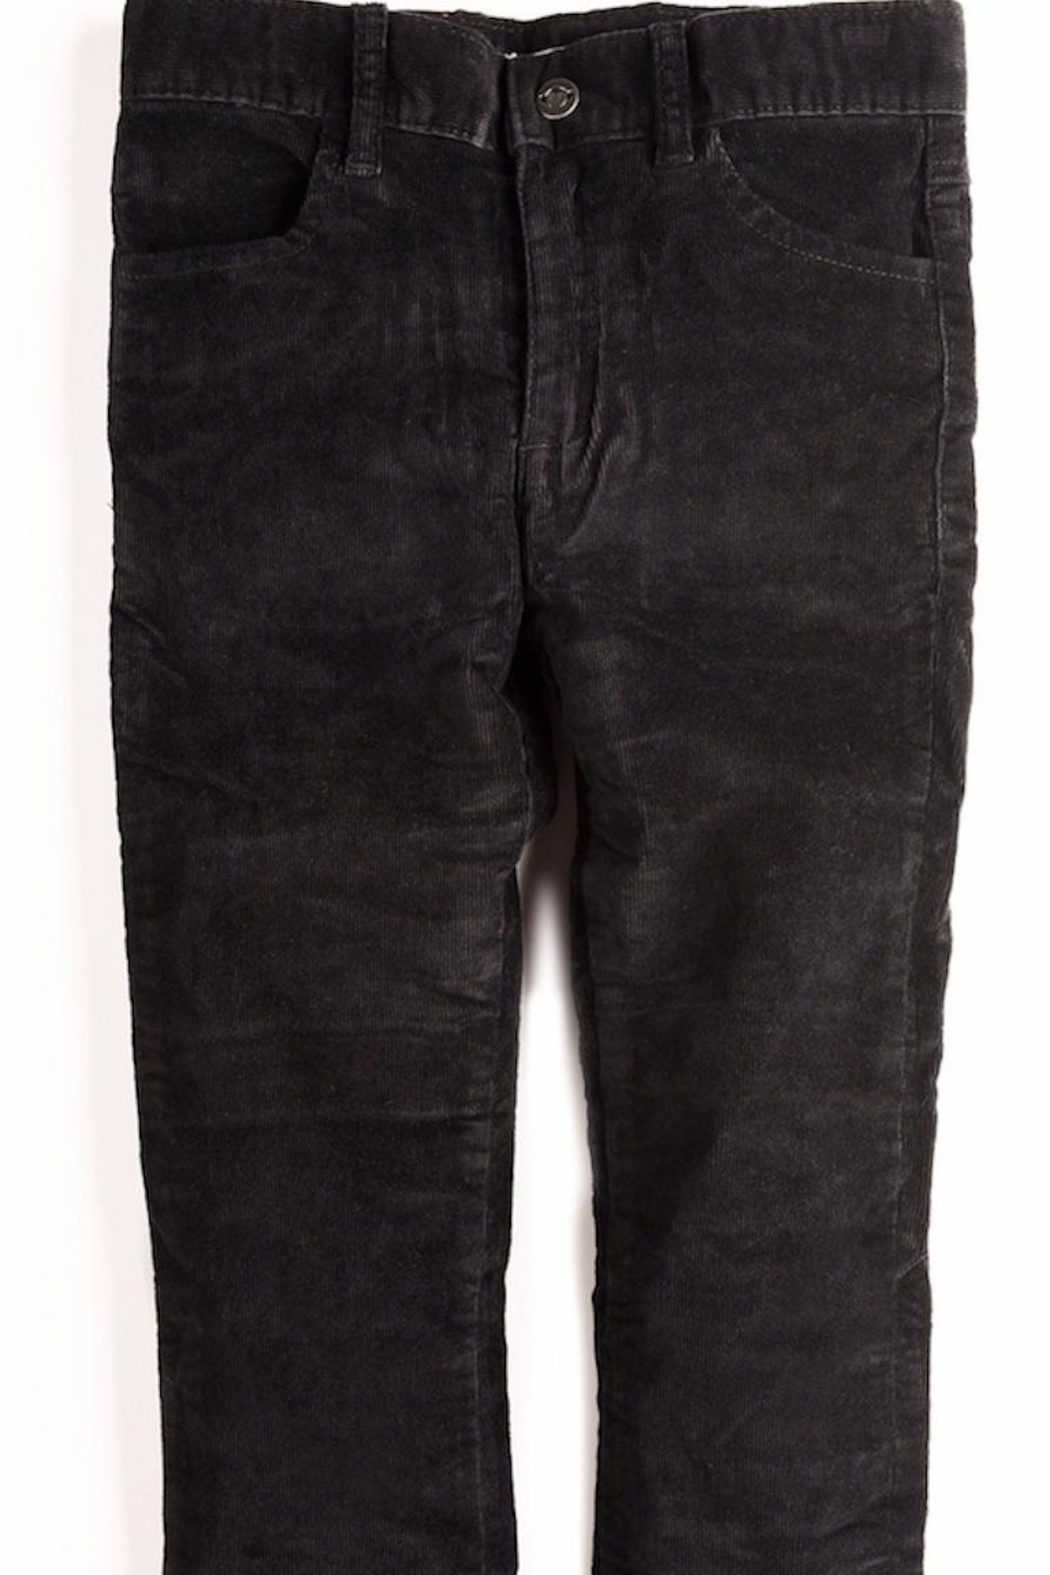 Appaman Black Skinny Pants - Main Image